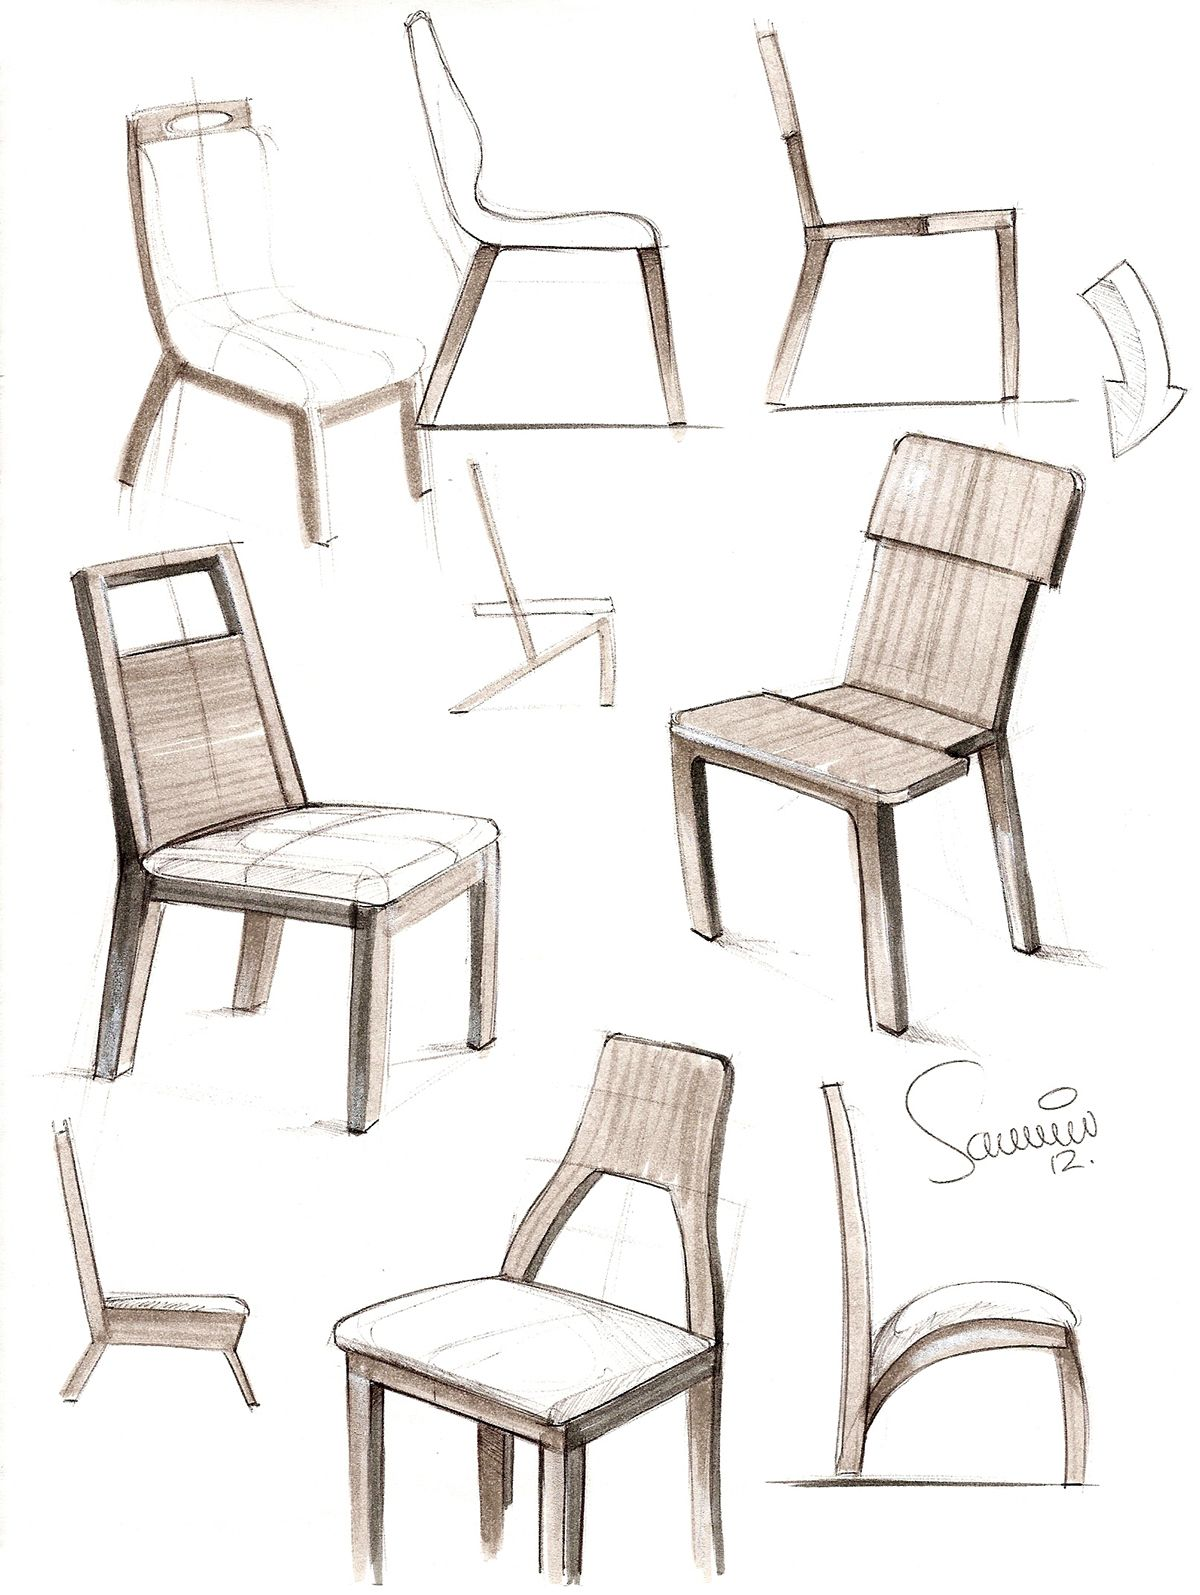 Genial FURNITURE SKETCHES On Behance